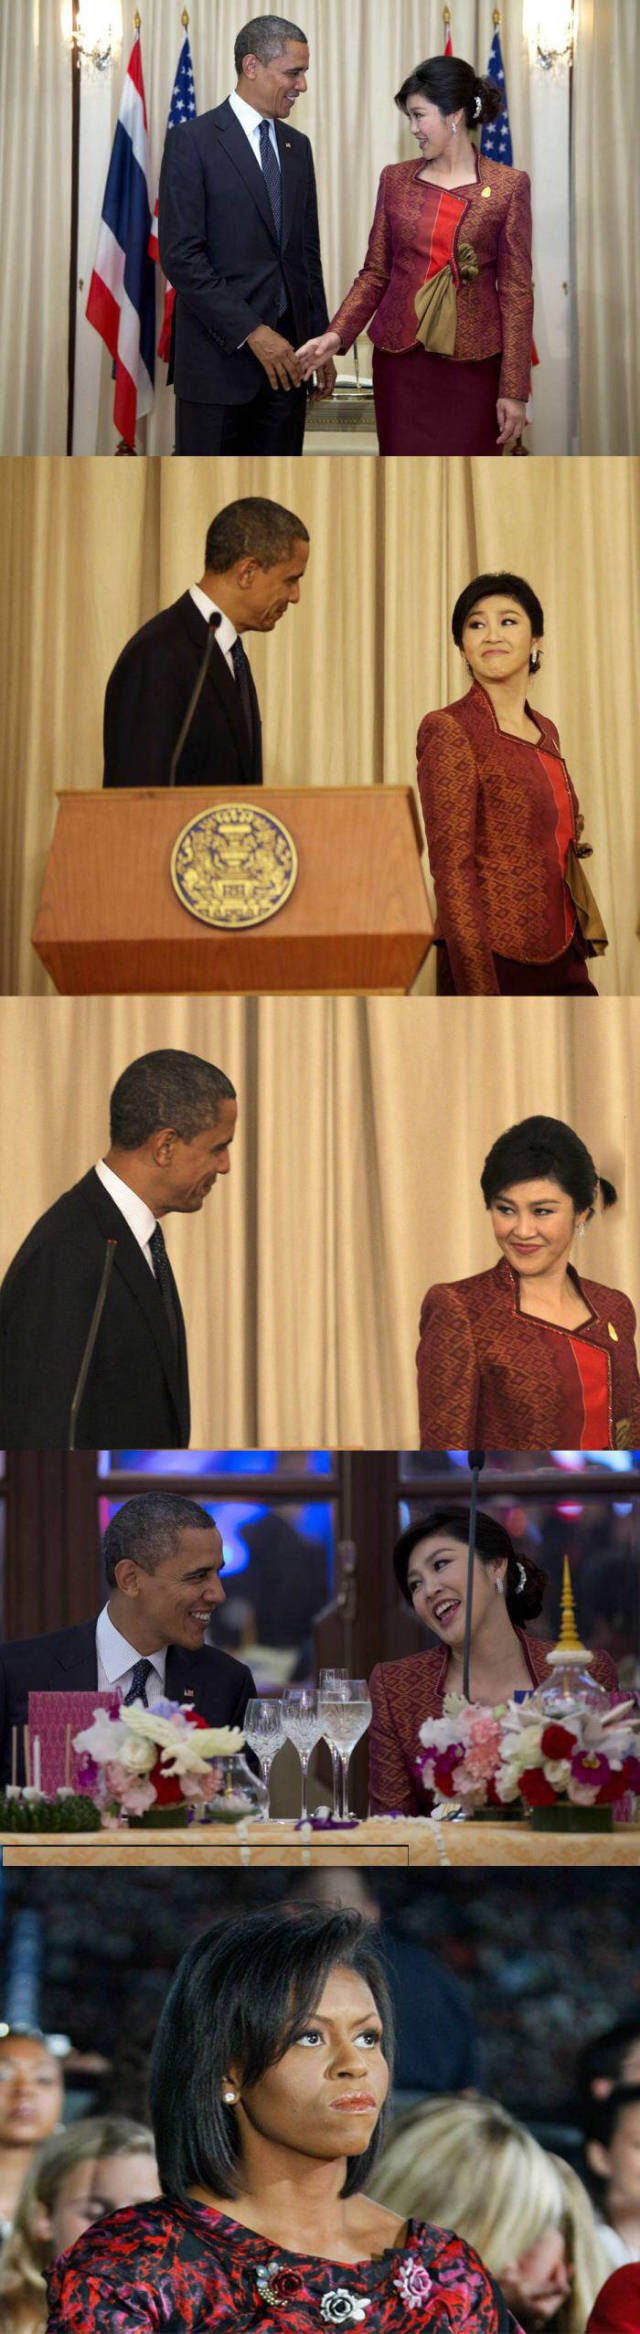 Obama flirts with the Thai Prime Minister and Michelle is pissed.